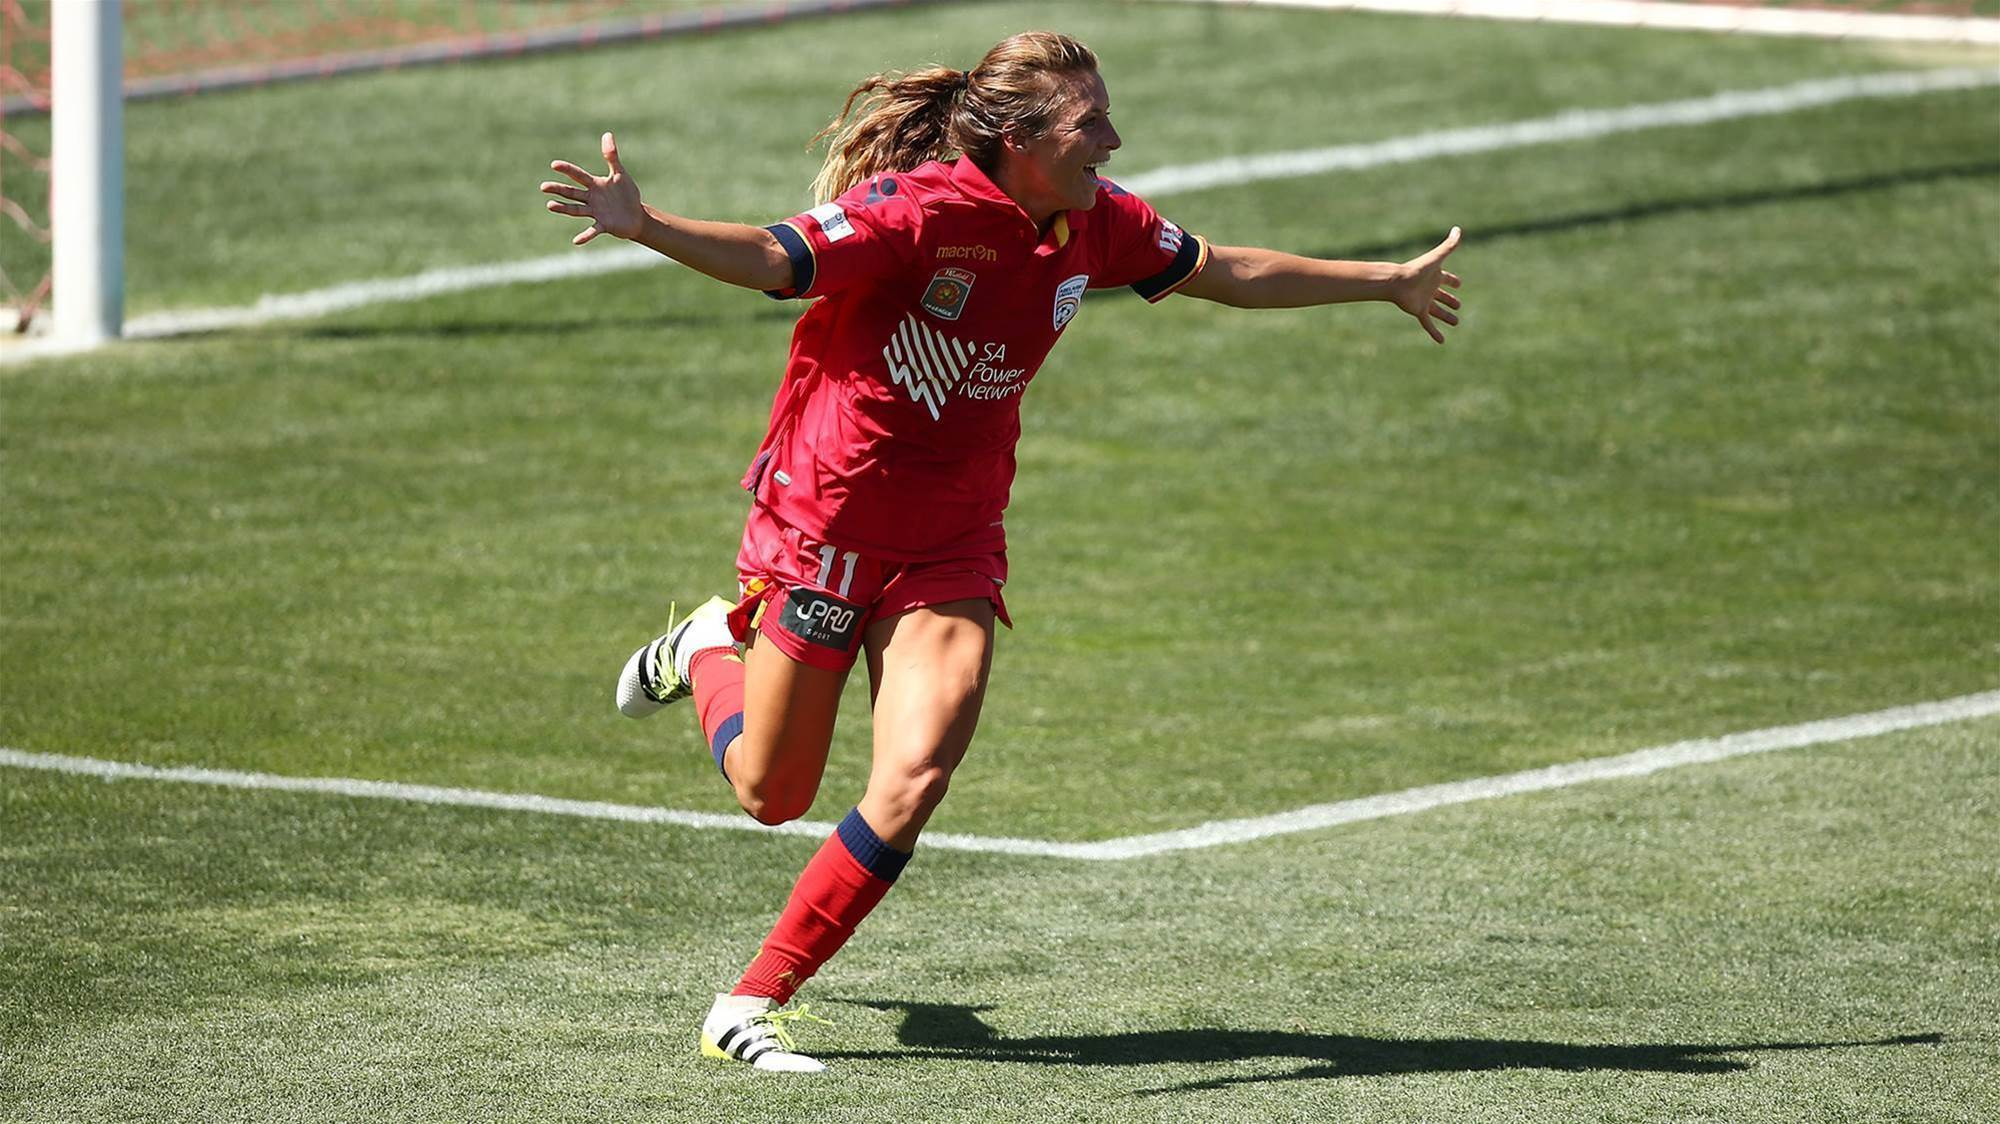 Huerta to make W-League return